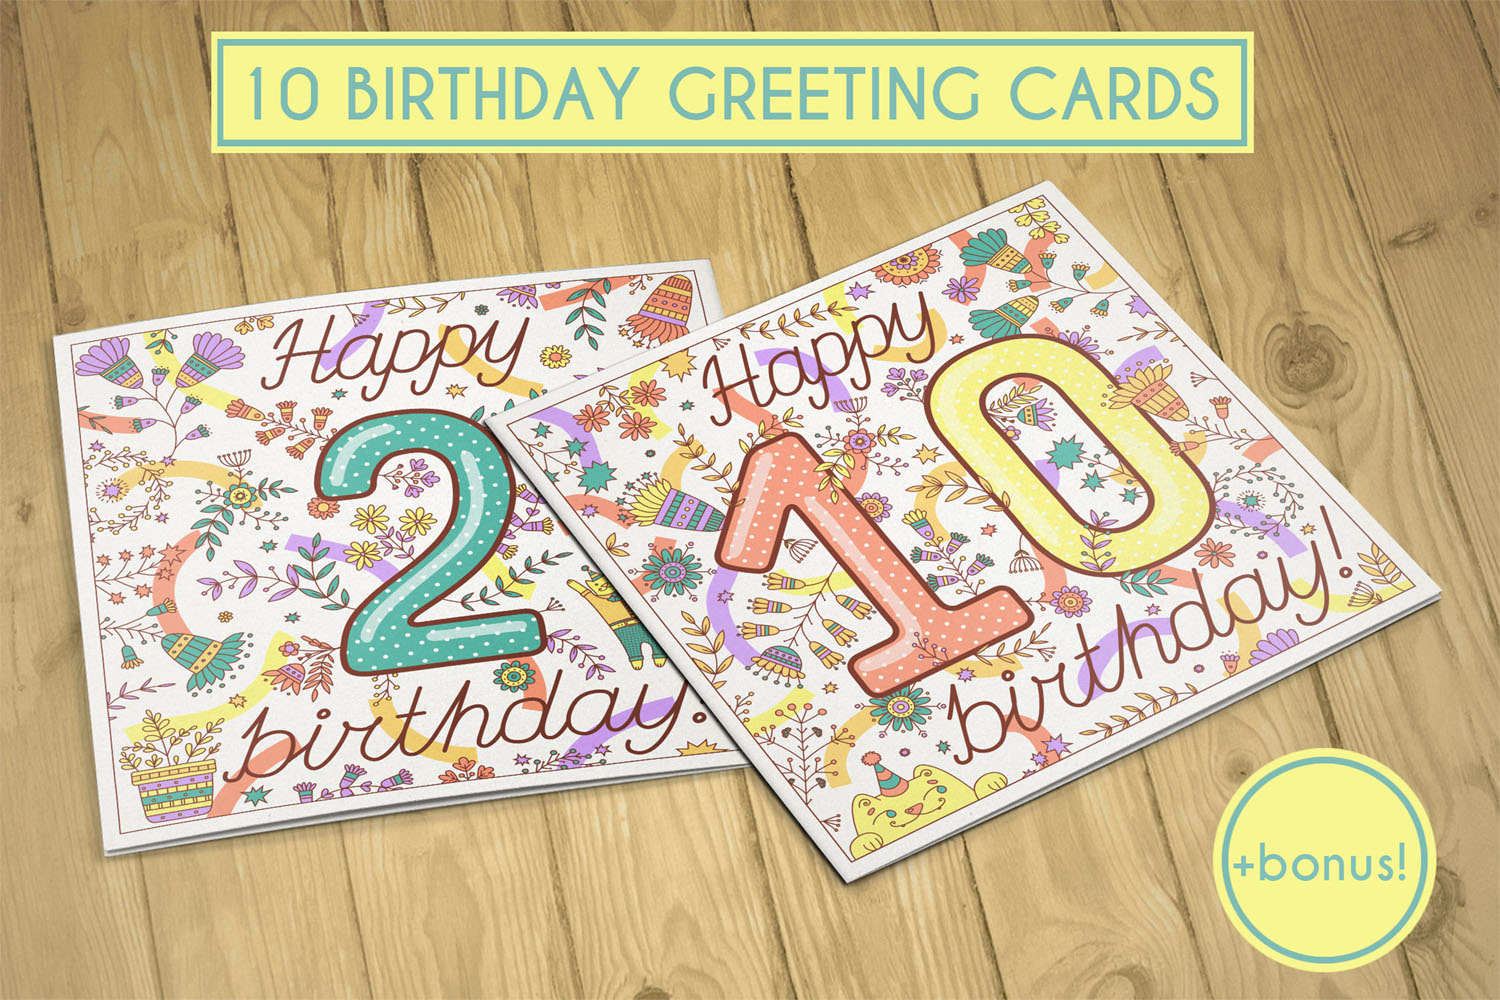 Birthday greeting cards collection example image 1